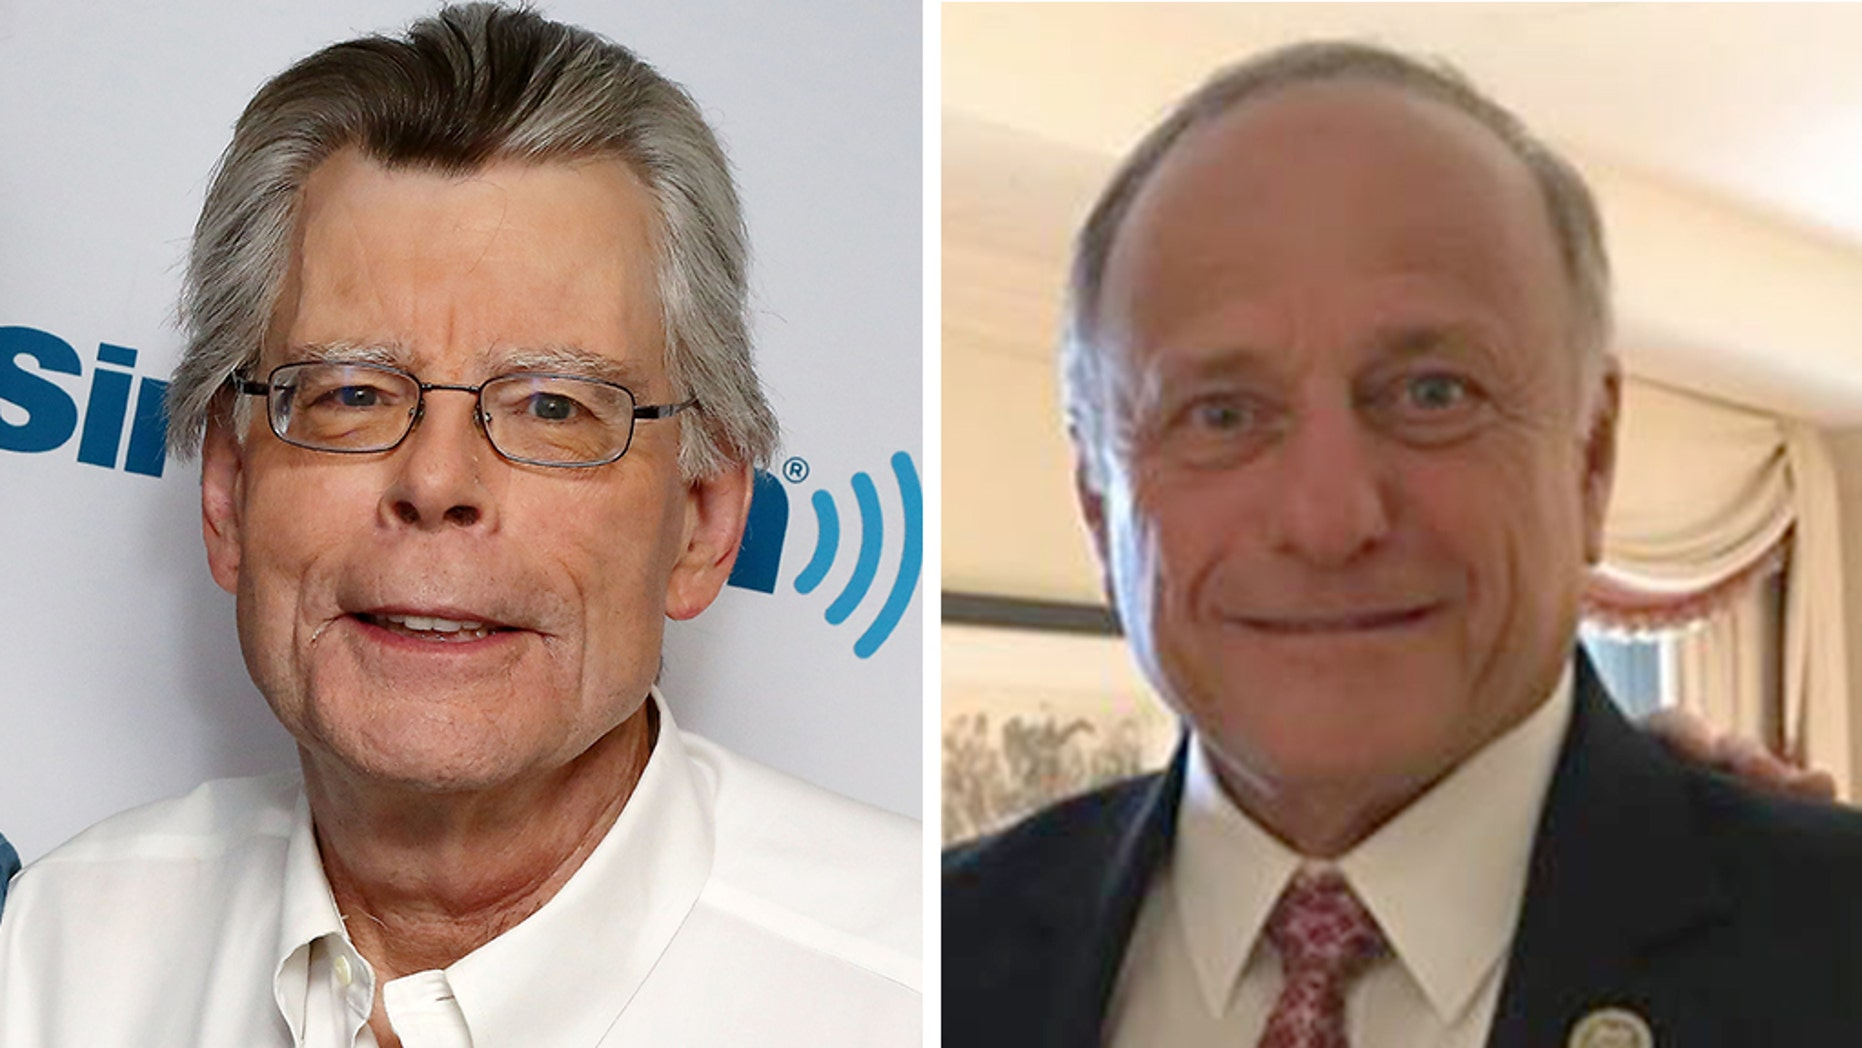 With Iowa Republican Rep. Steve King, right, engulfed in controversy, author Stephen King took to social media over the weekend to try to distance himself from the congressman.